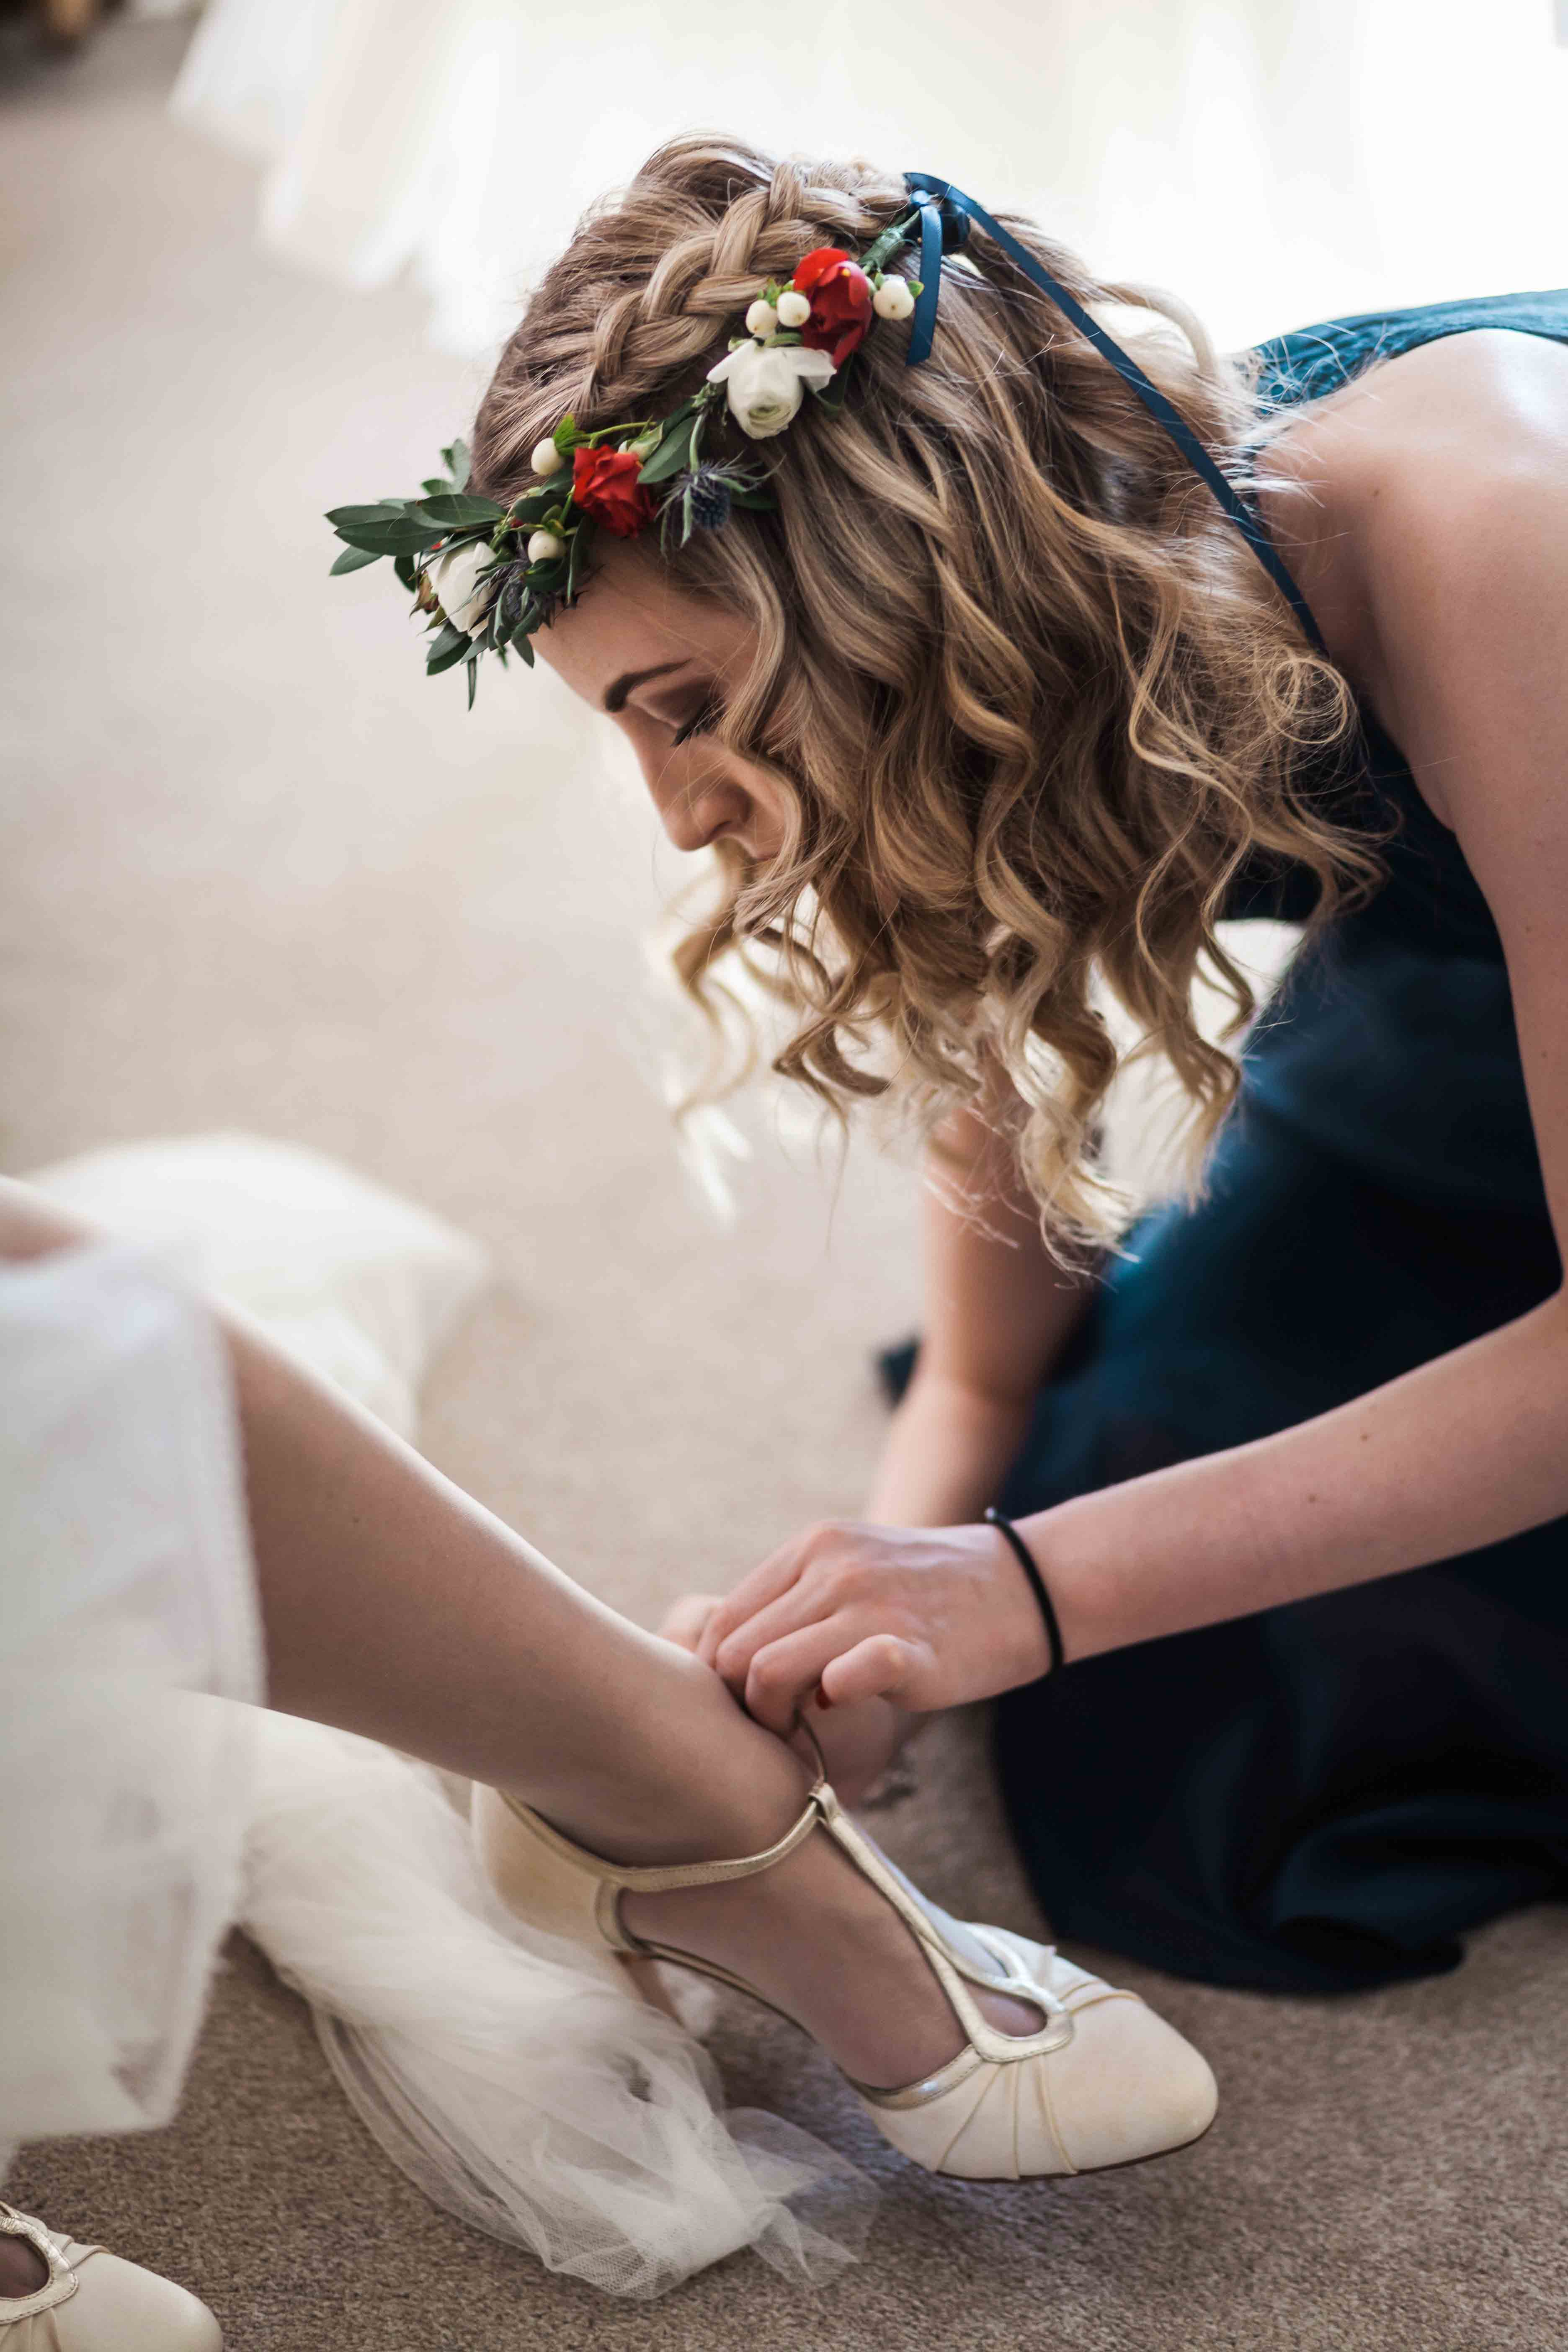 Bridesmaid with flower crown fixing brides shoe.